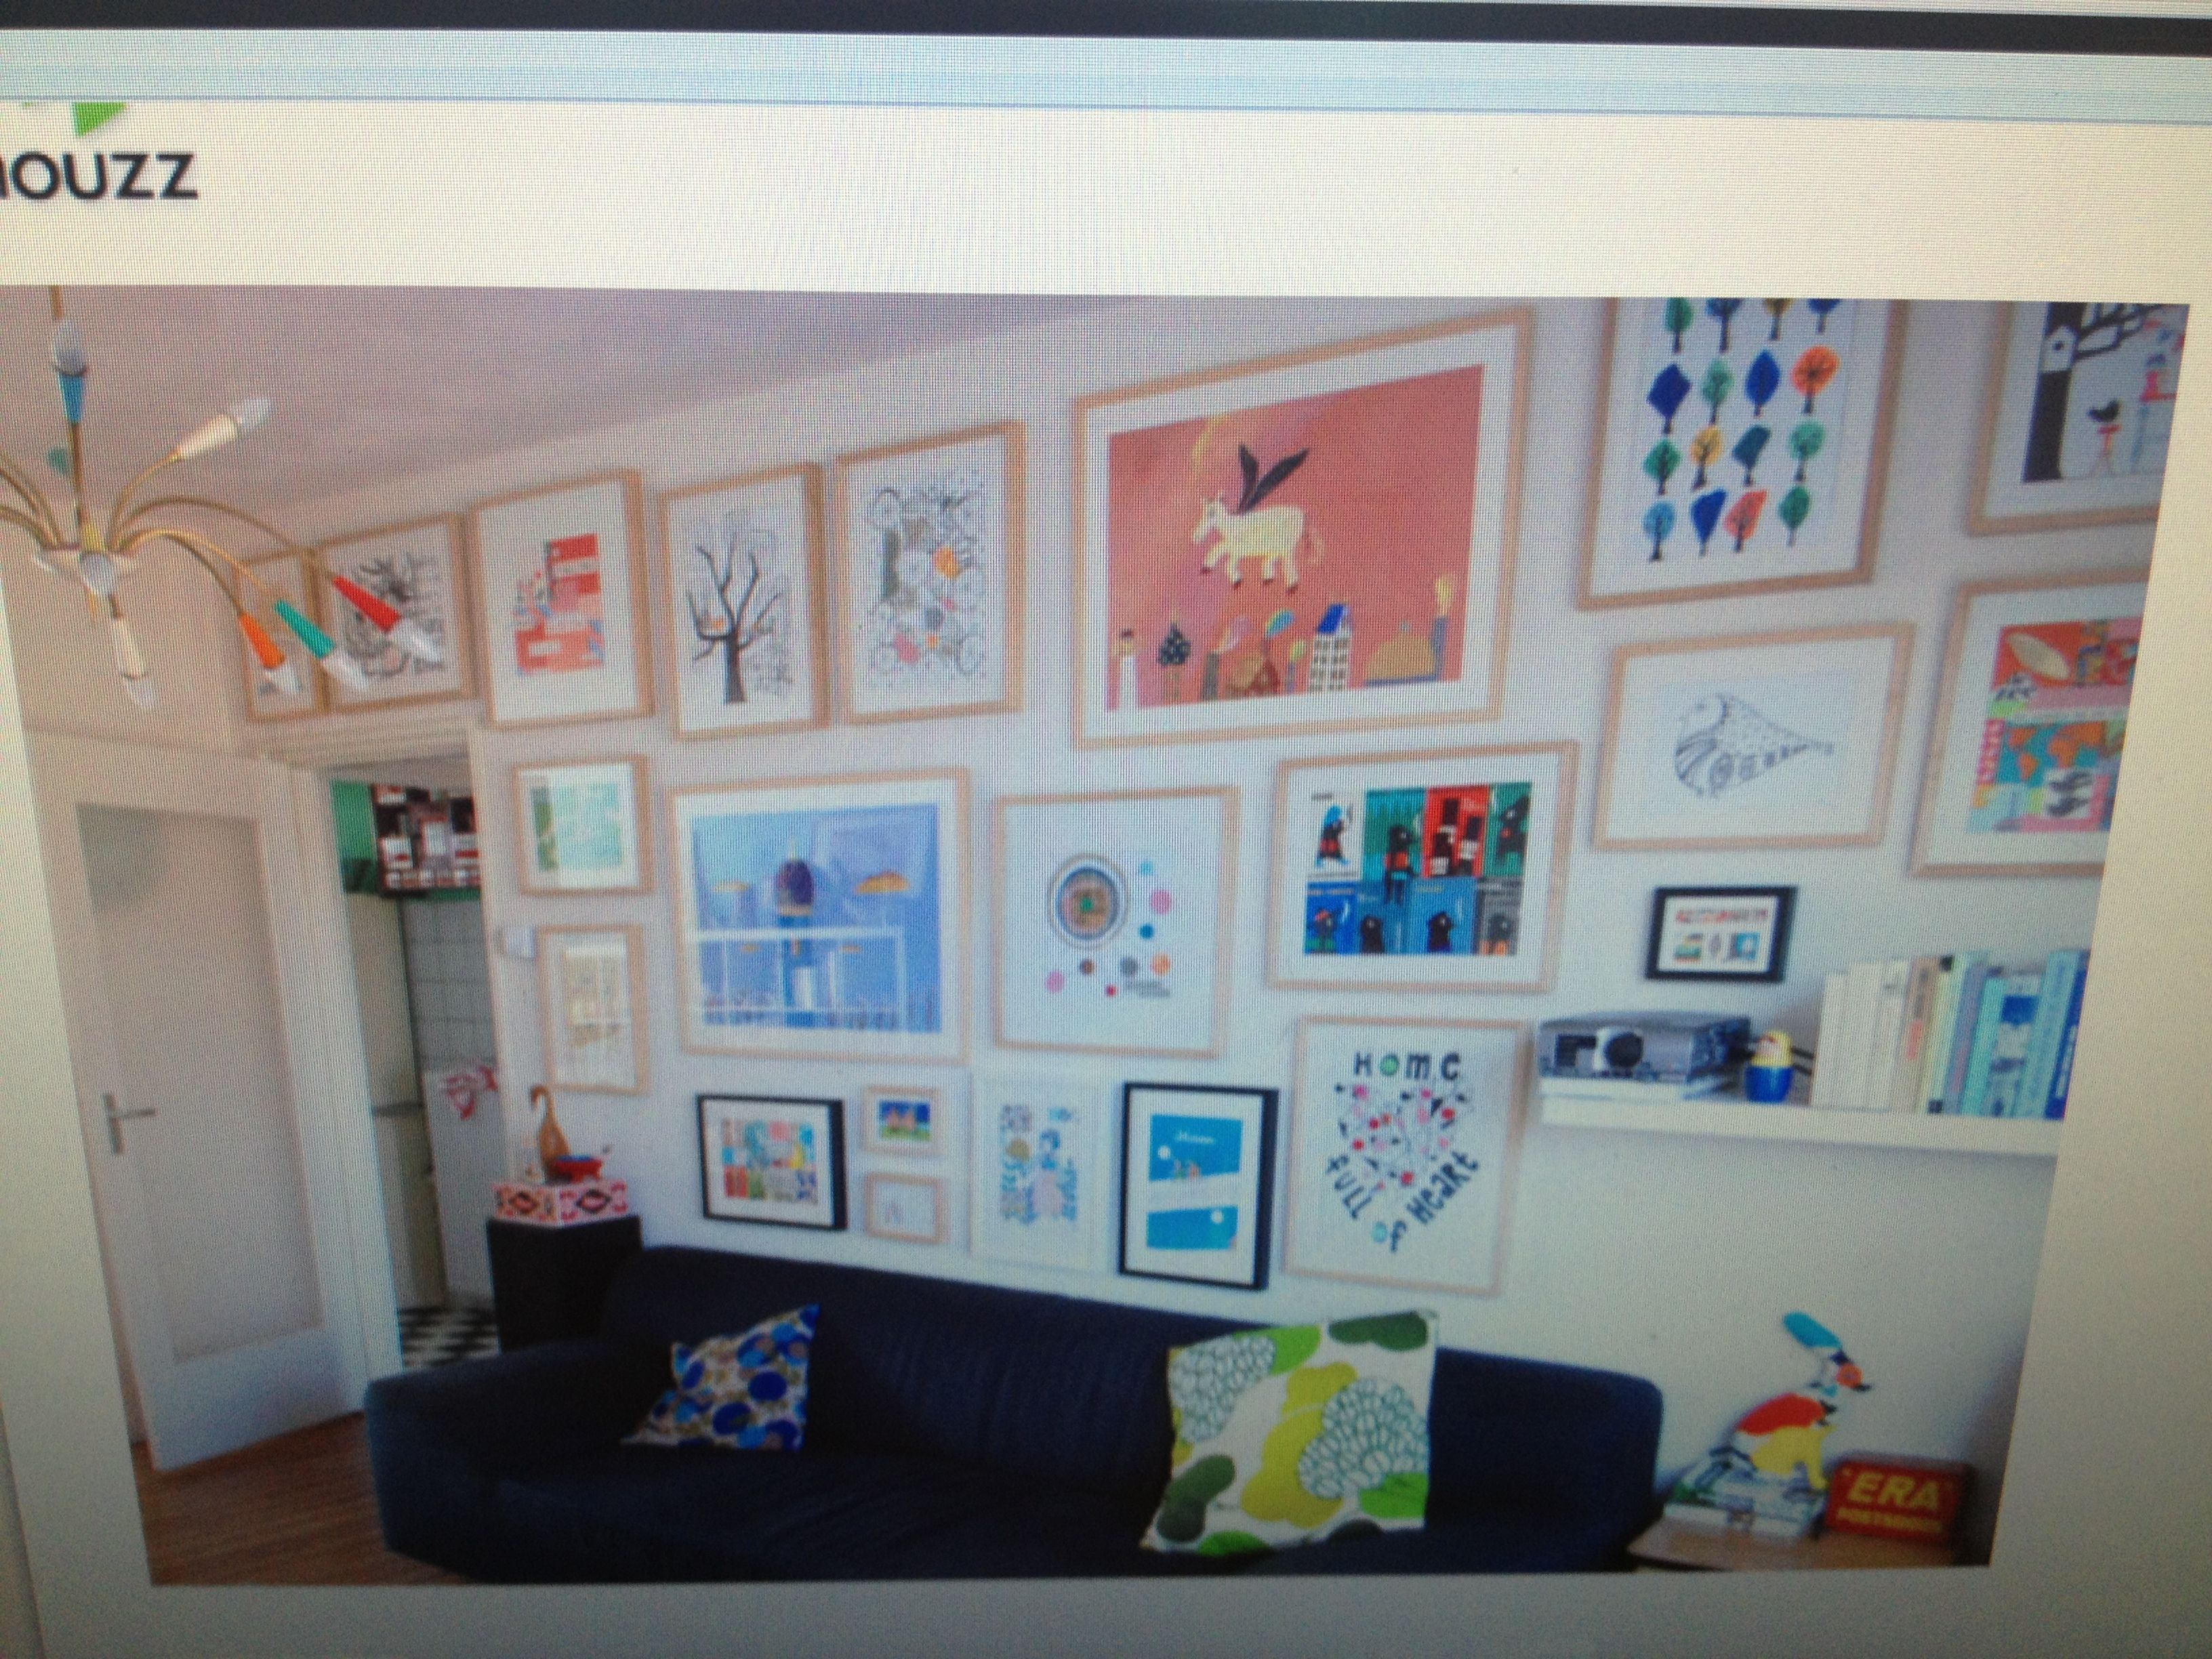 Formal Living Room Alternative - Kids Art